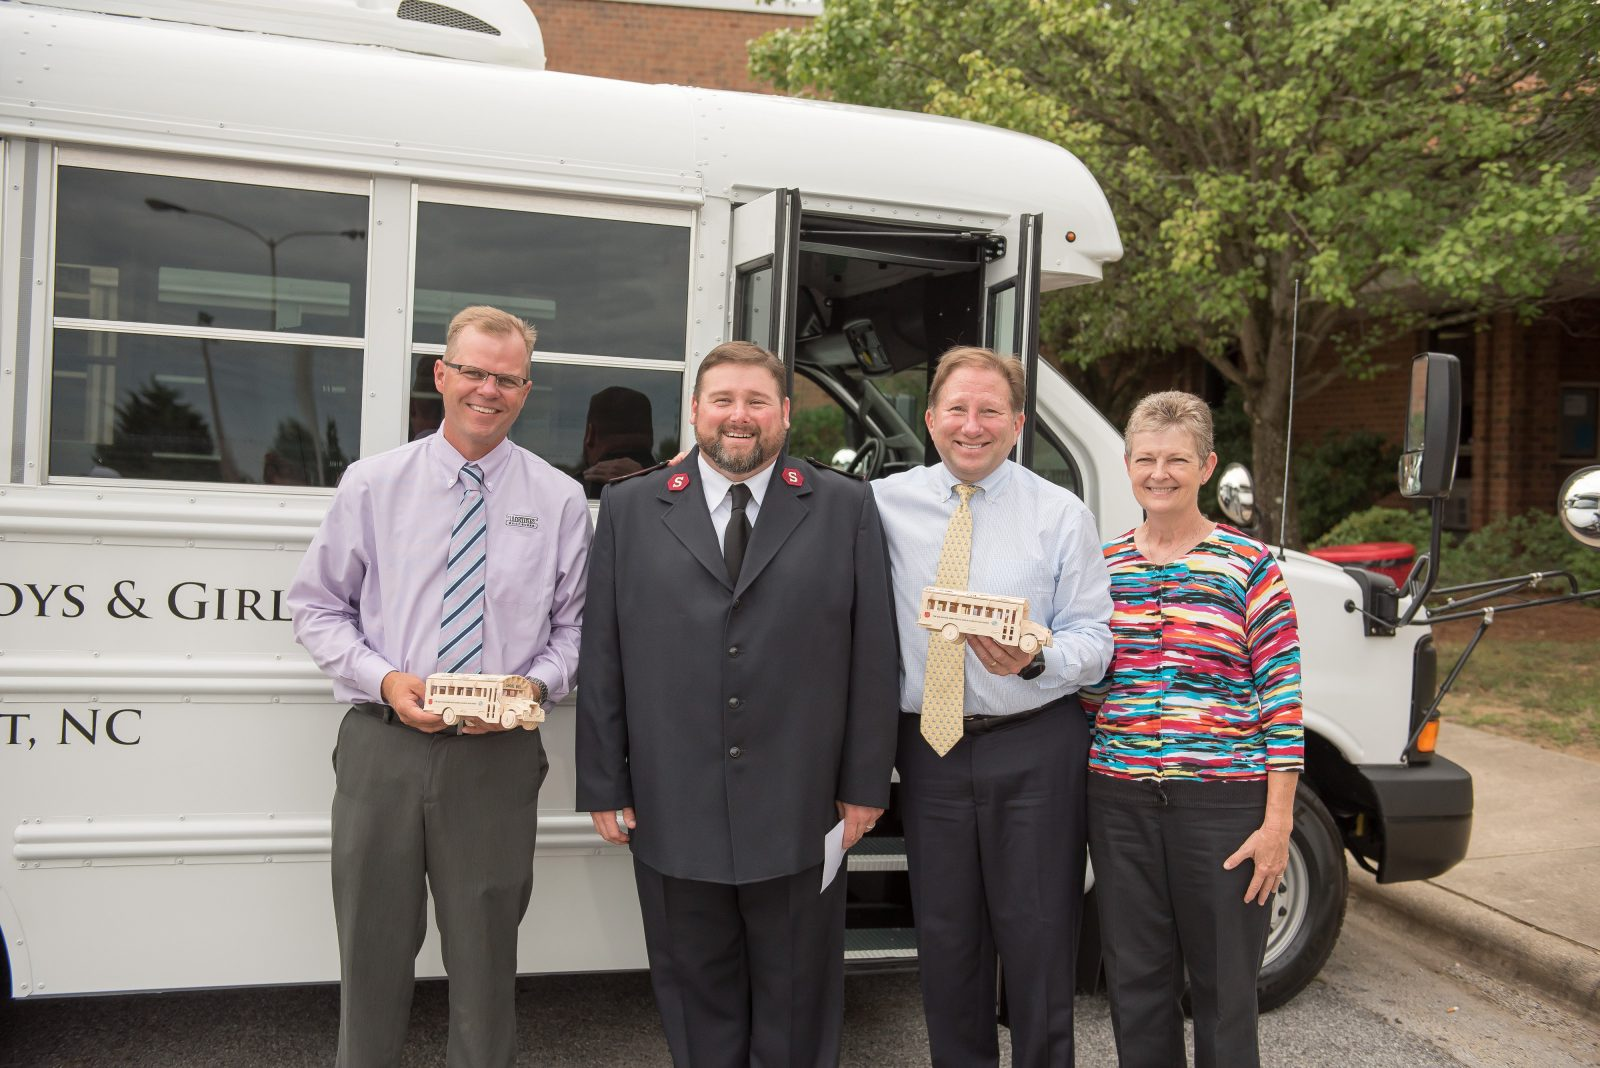 Boys & Girls Club with Salvation Army receive new buses